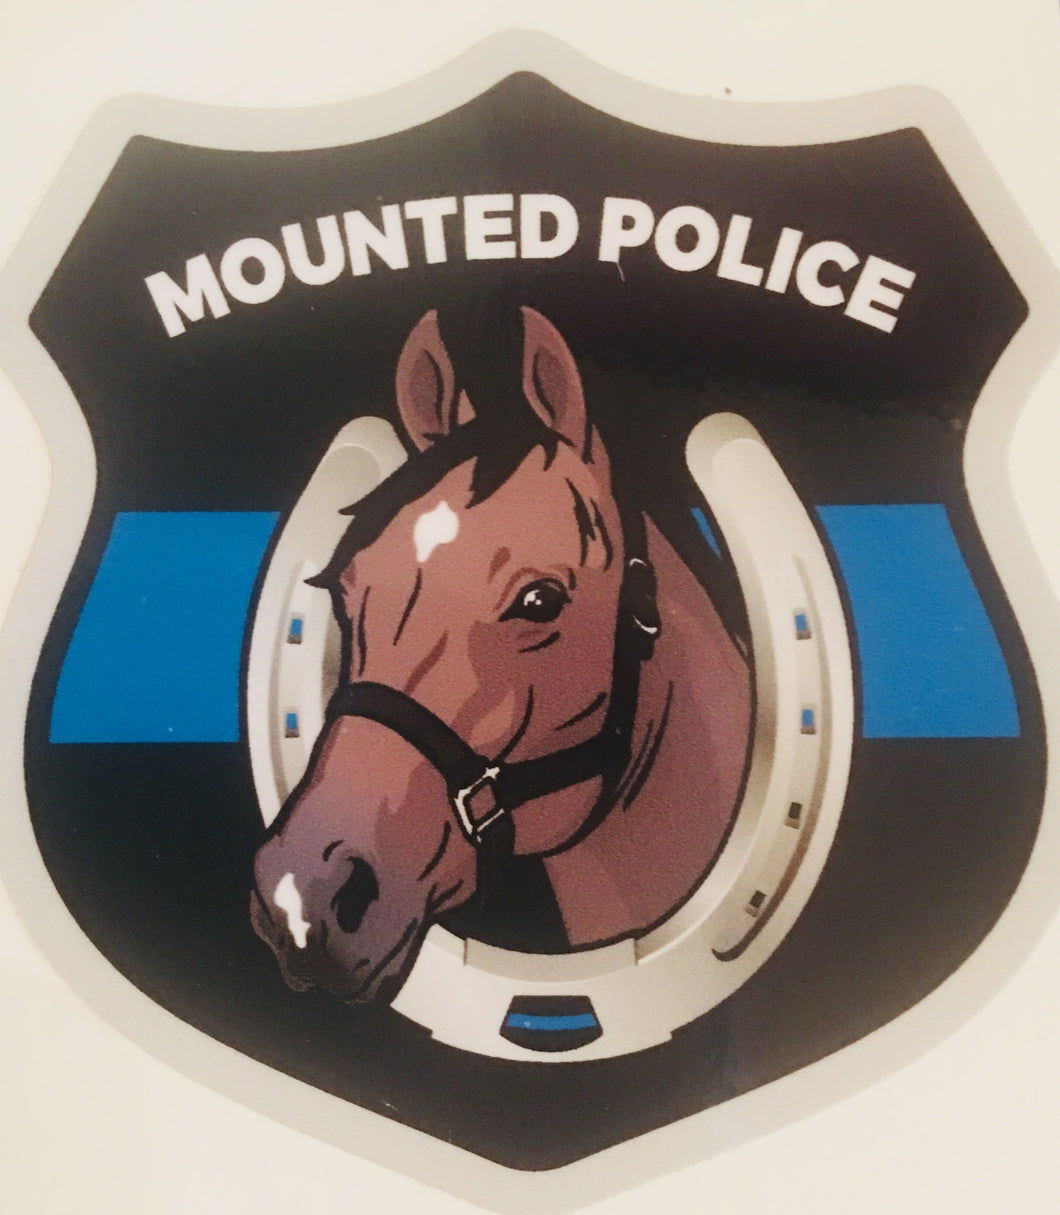 Mounted Police Thin Blue Line Sticker / Decal